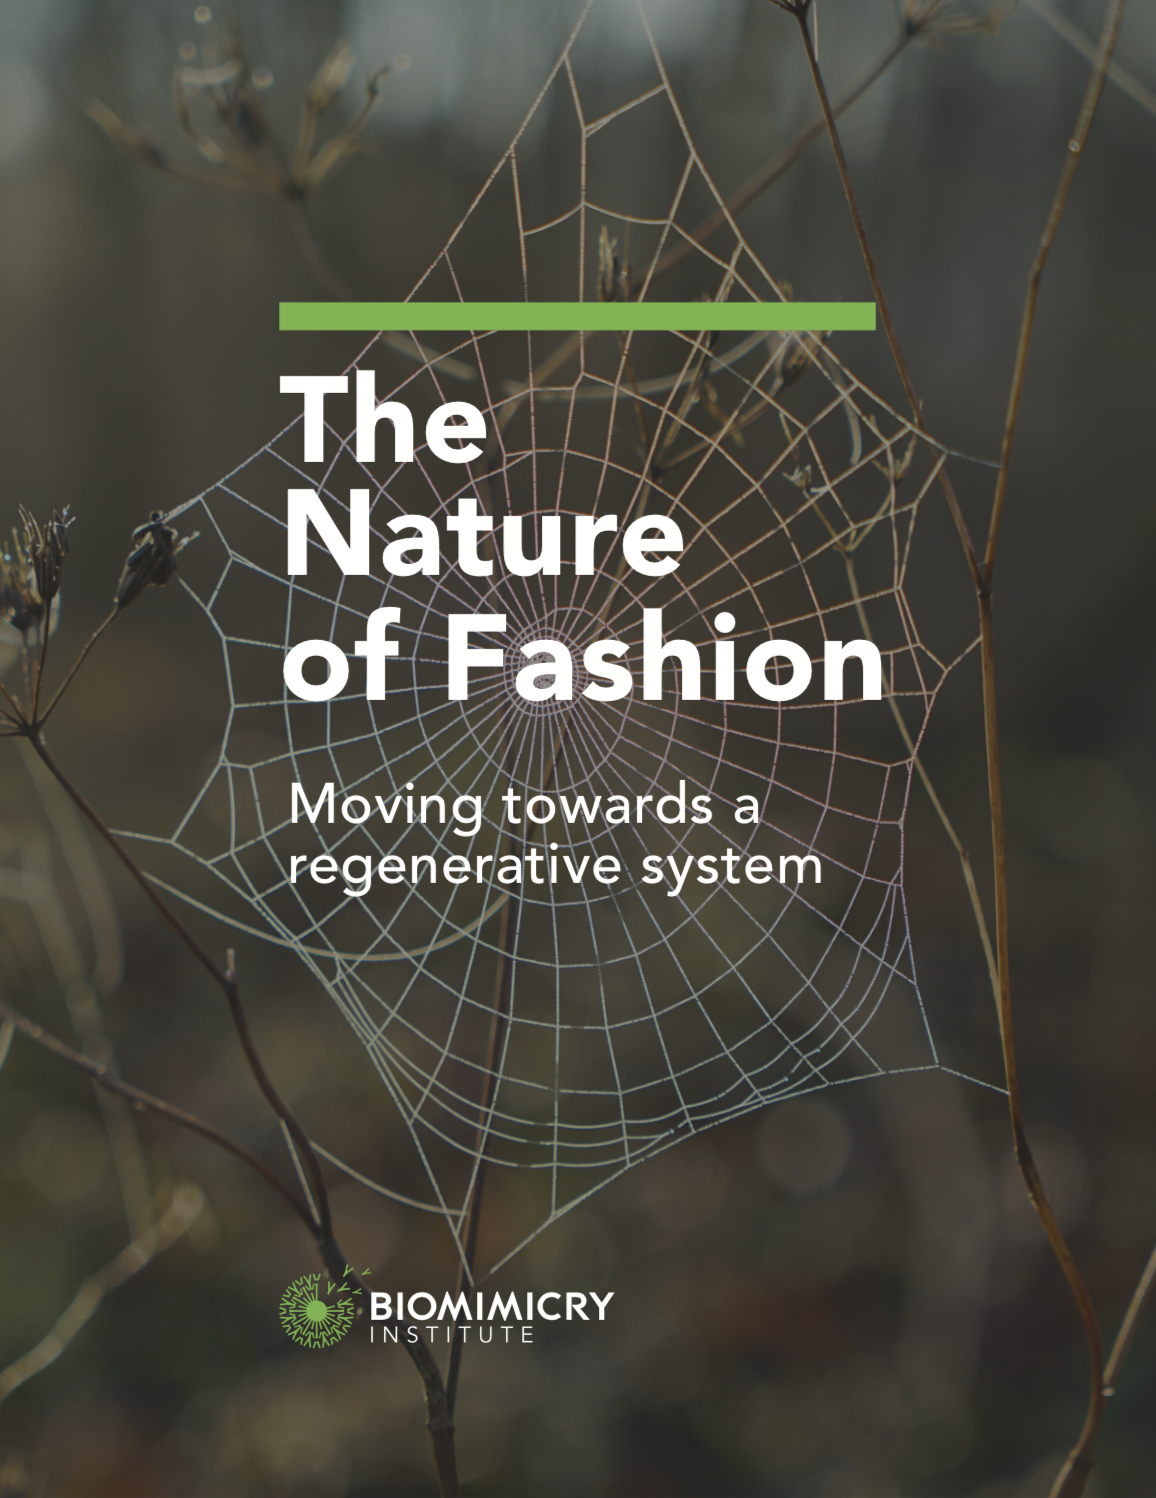 The Nature of Fashion - Biomimicry Insti